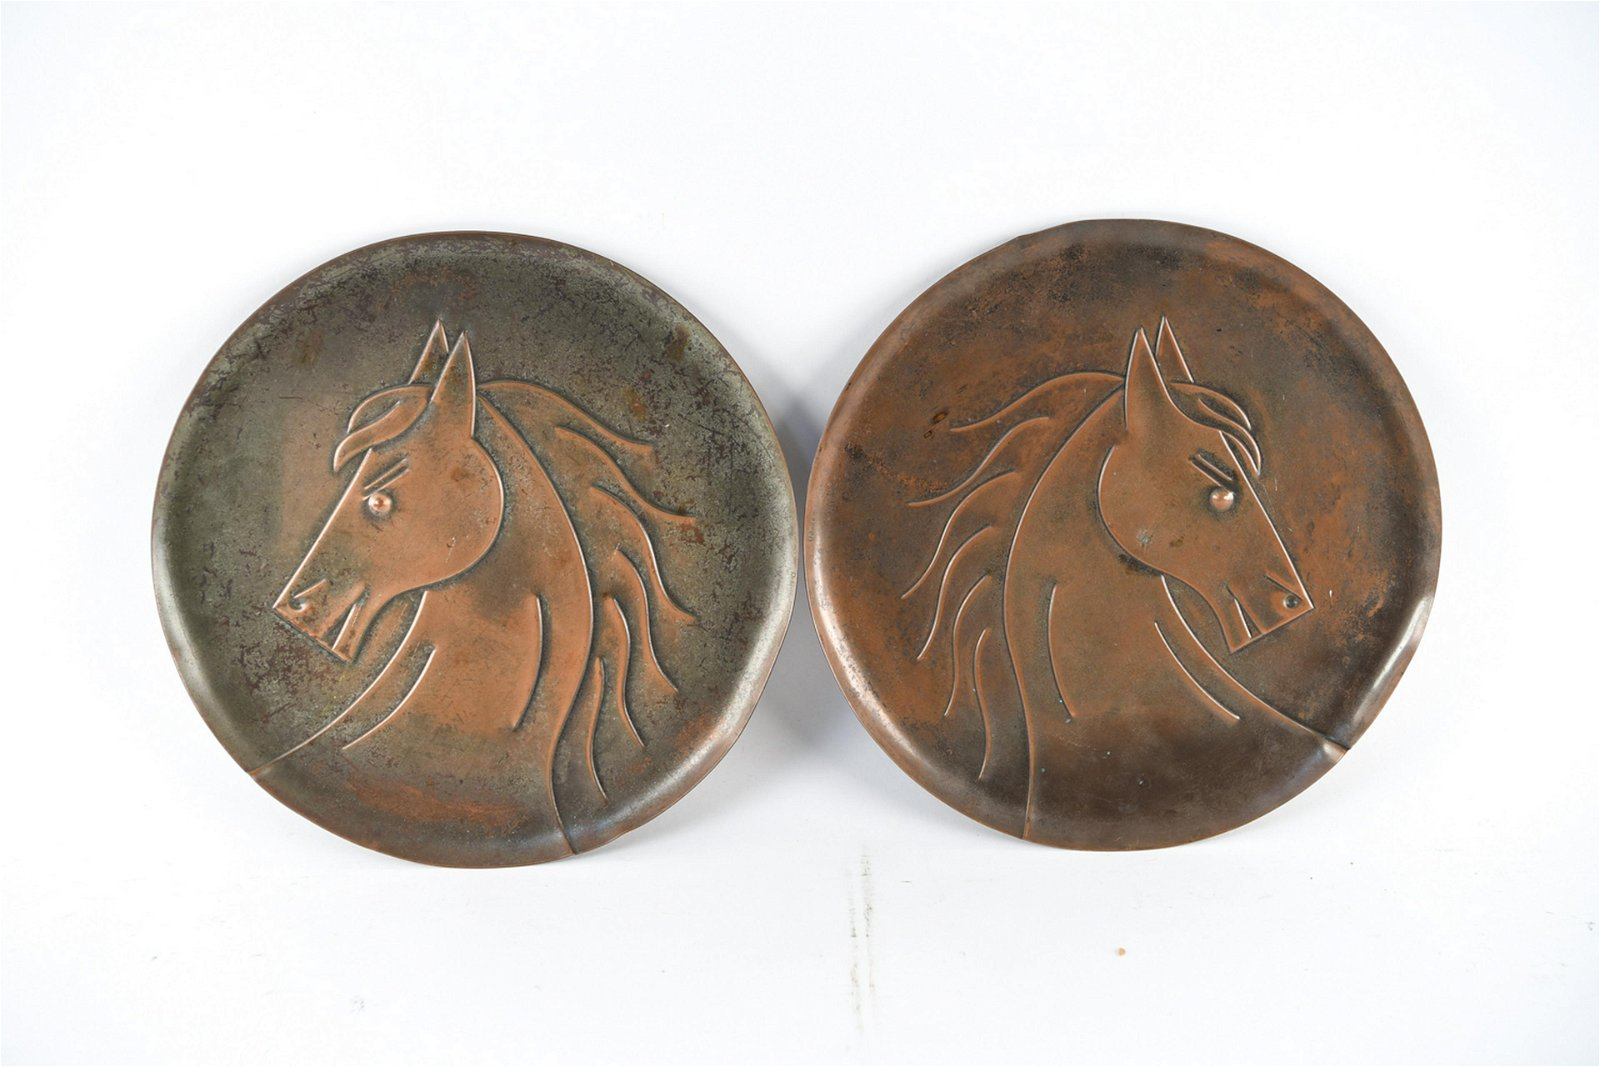 PAIR OF HAND HAMMERED COPPER HORSE RELIEFS